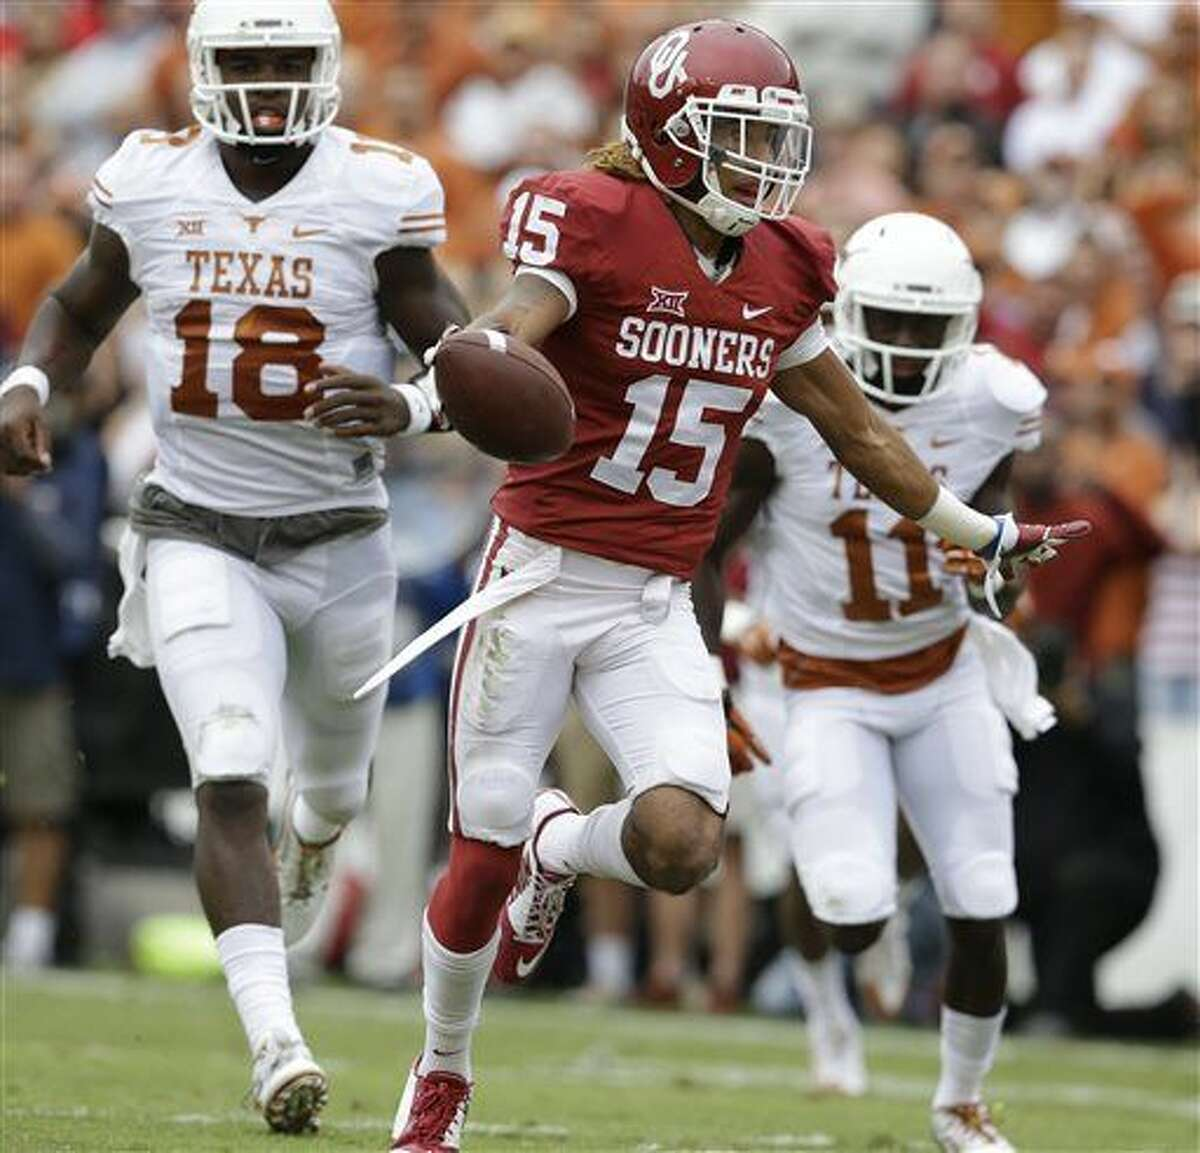 FILE - In this Oct. 11, 2014, file photo, Oklahoma cornerback Zack Sanchez (15) celebrates scoring a touchdown after intercepting a pass against Texas wide receiver Jacorey Warrick (11) and quarterback Tyrone Swoopes (18) during the first half of an NCAA college football game at the Cotton Bowl in Dallas. Texas and Oklahoma meet Saturday, Oct. 10, 2015. (AP Photo/LM Otero, FIle)